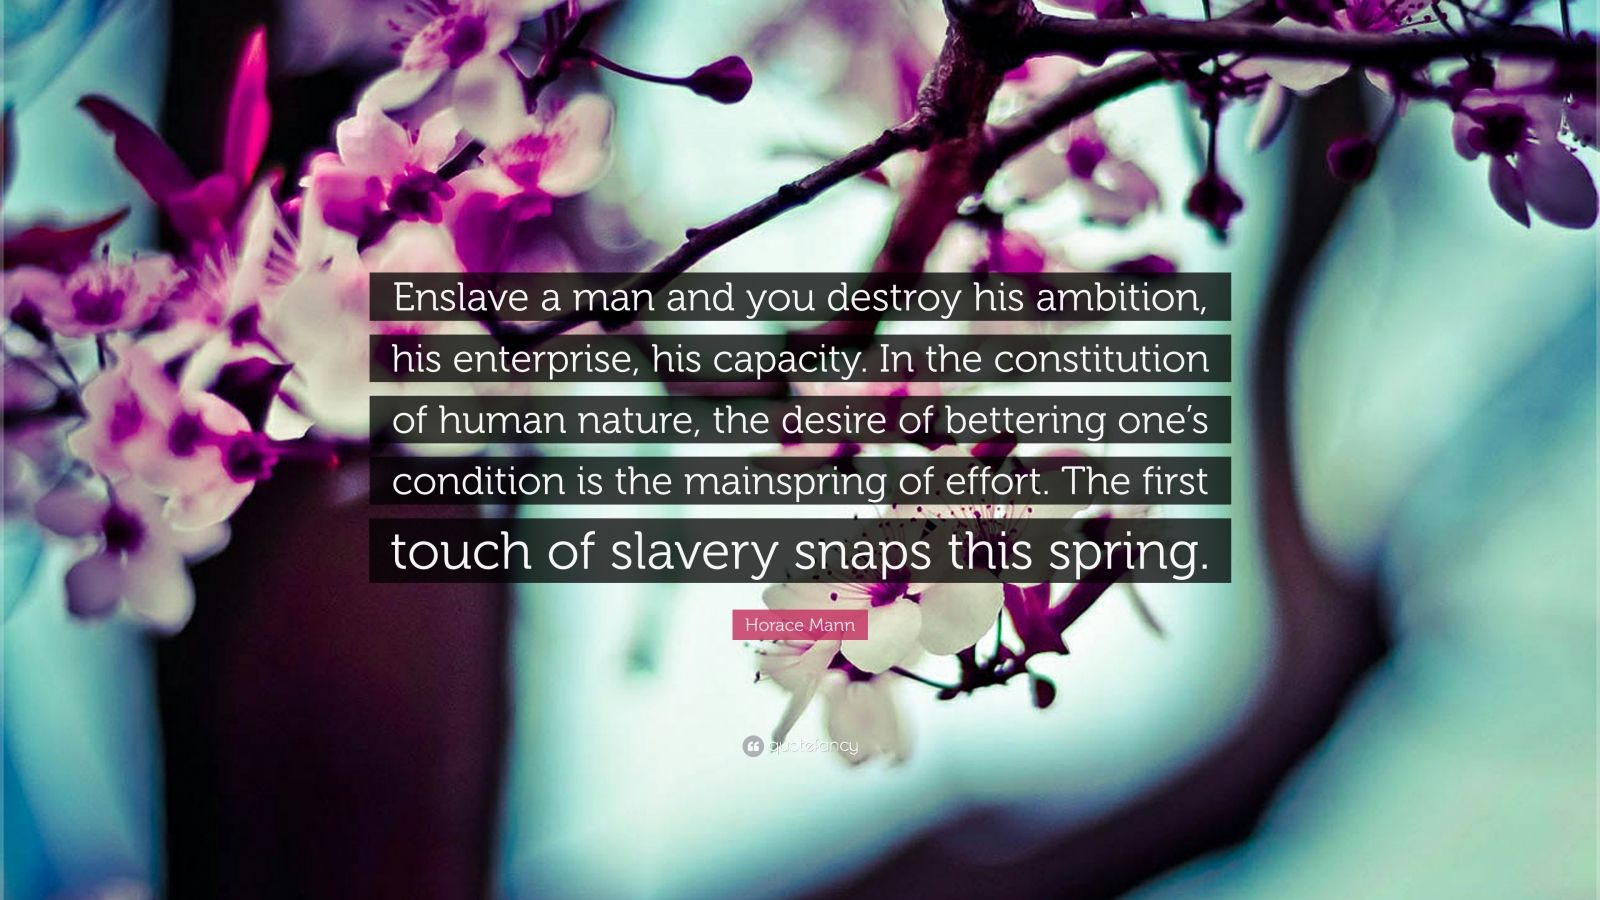 """Horace Mann Quote: """"Enslave a man and you destroy his ambition, his enterprise, his capacity. In the constitution of human nature, the desire of bettering one's condition is the mainspring of effort. The first touch of slavery snaps this spring."""""""